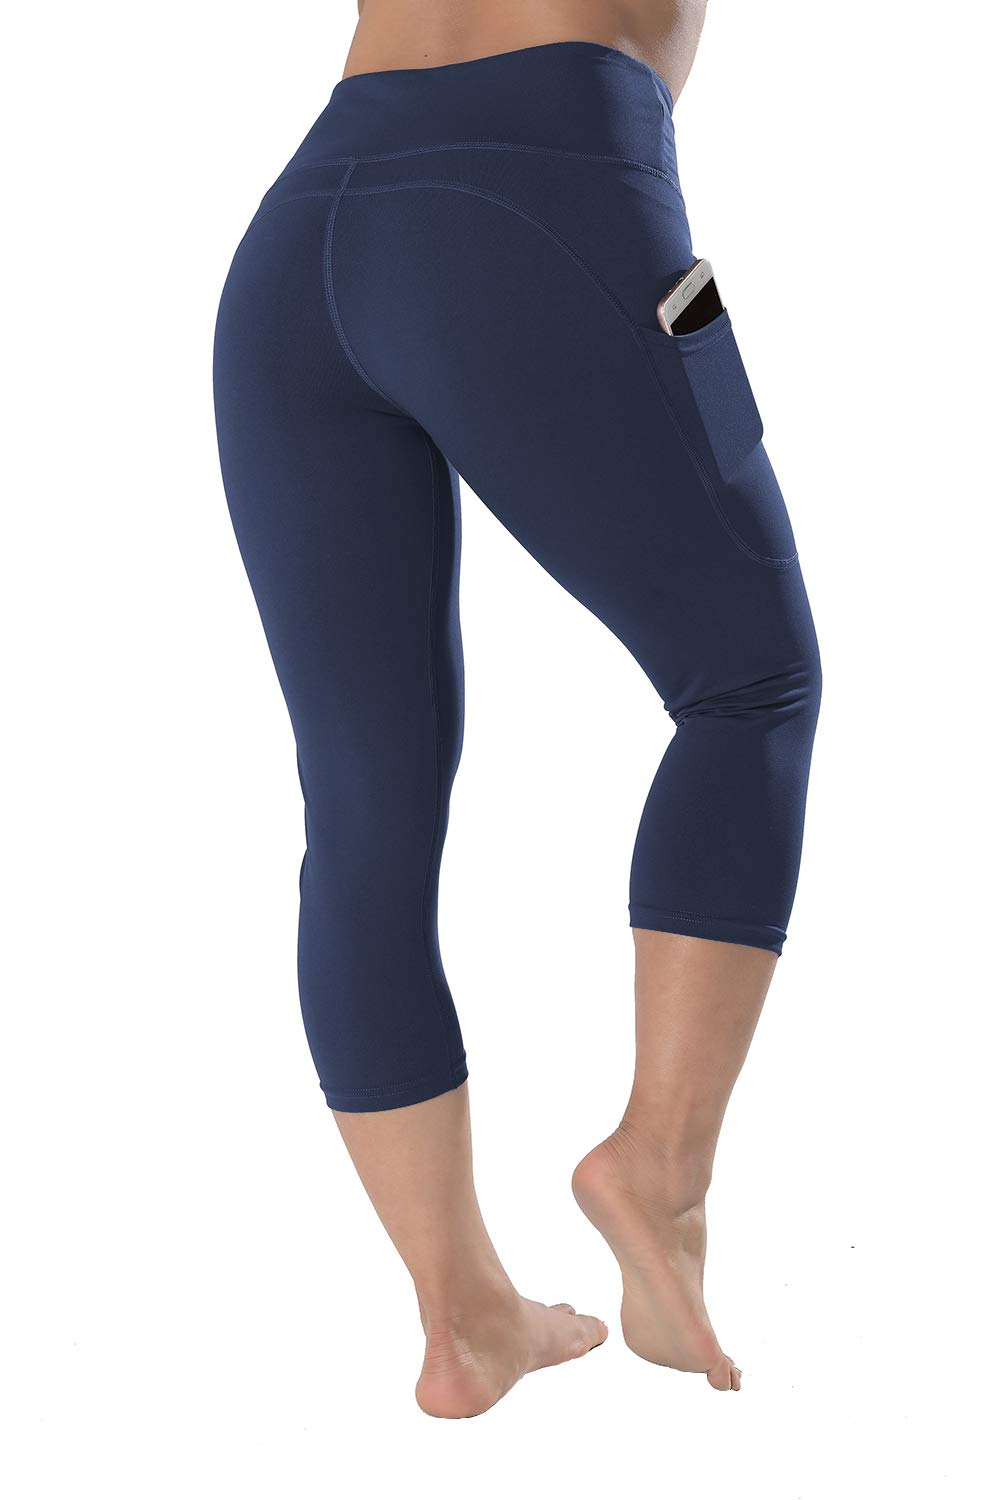 QYQ High Waisted Leggings with Pockets - Workout Leggings for Women Stretch Power Flex Yoga Pants - Full&Capri (X-Large, Navy-Capri) by QYQ